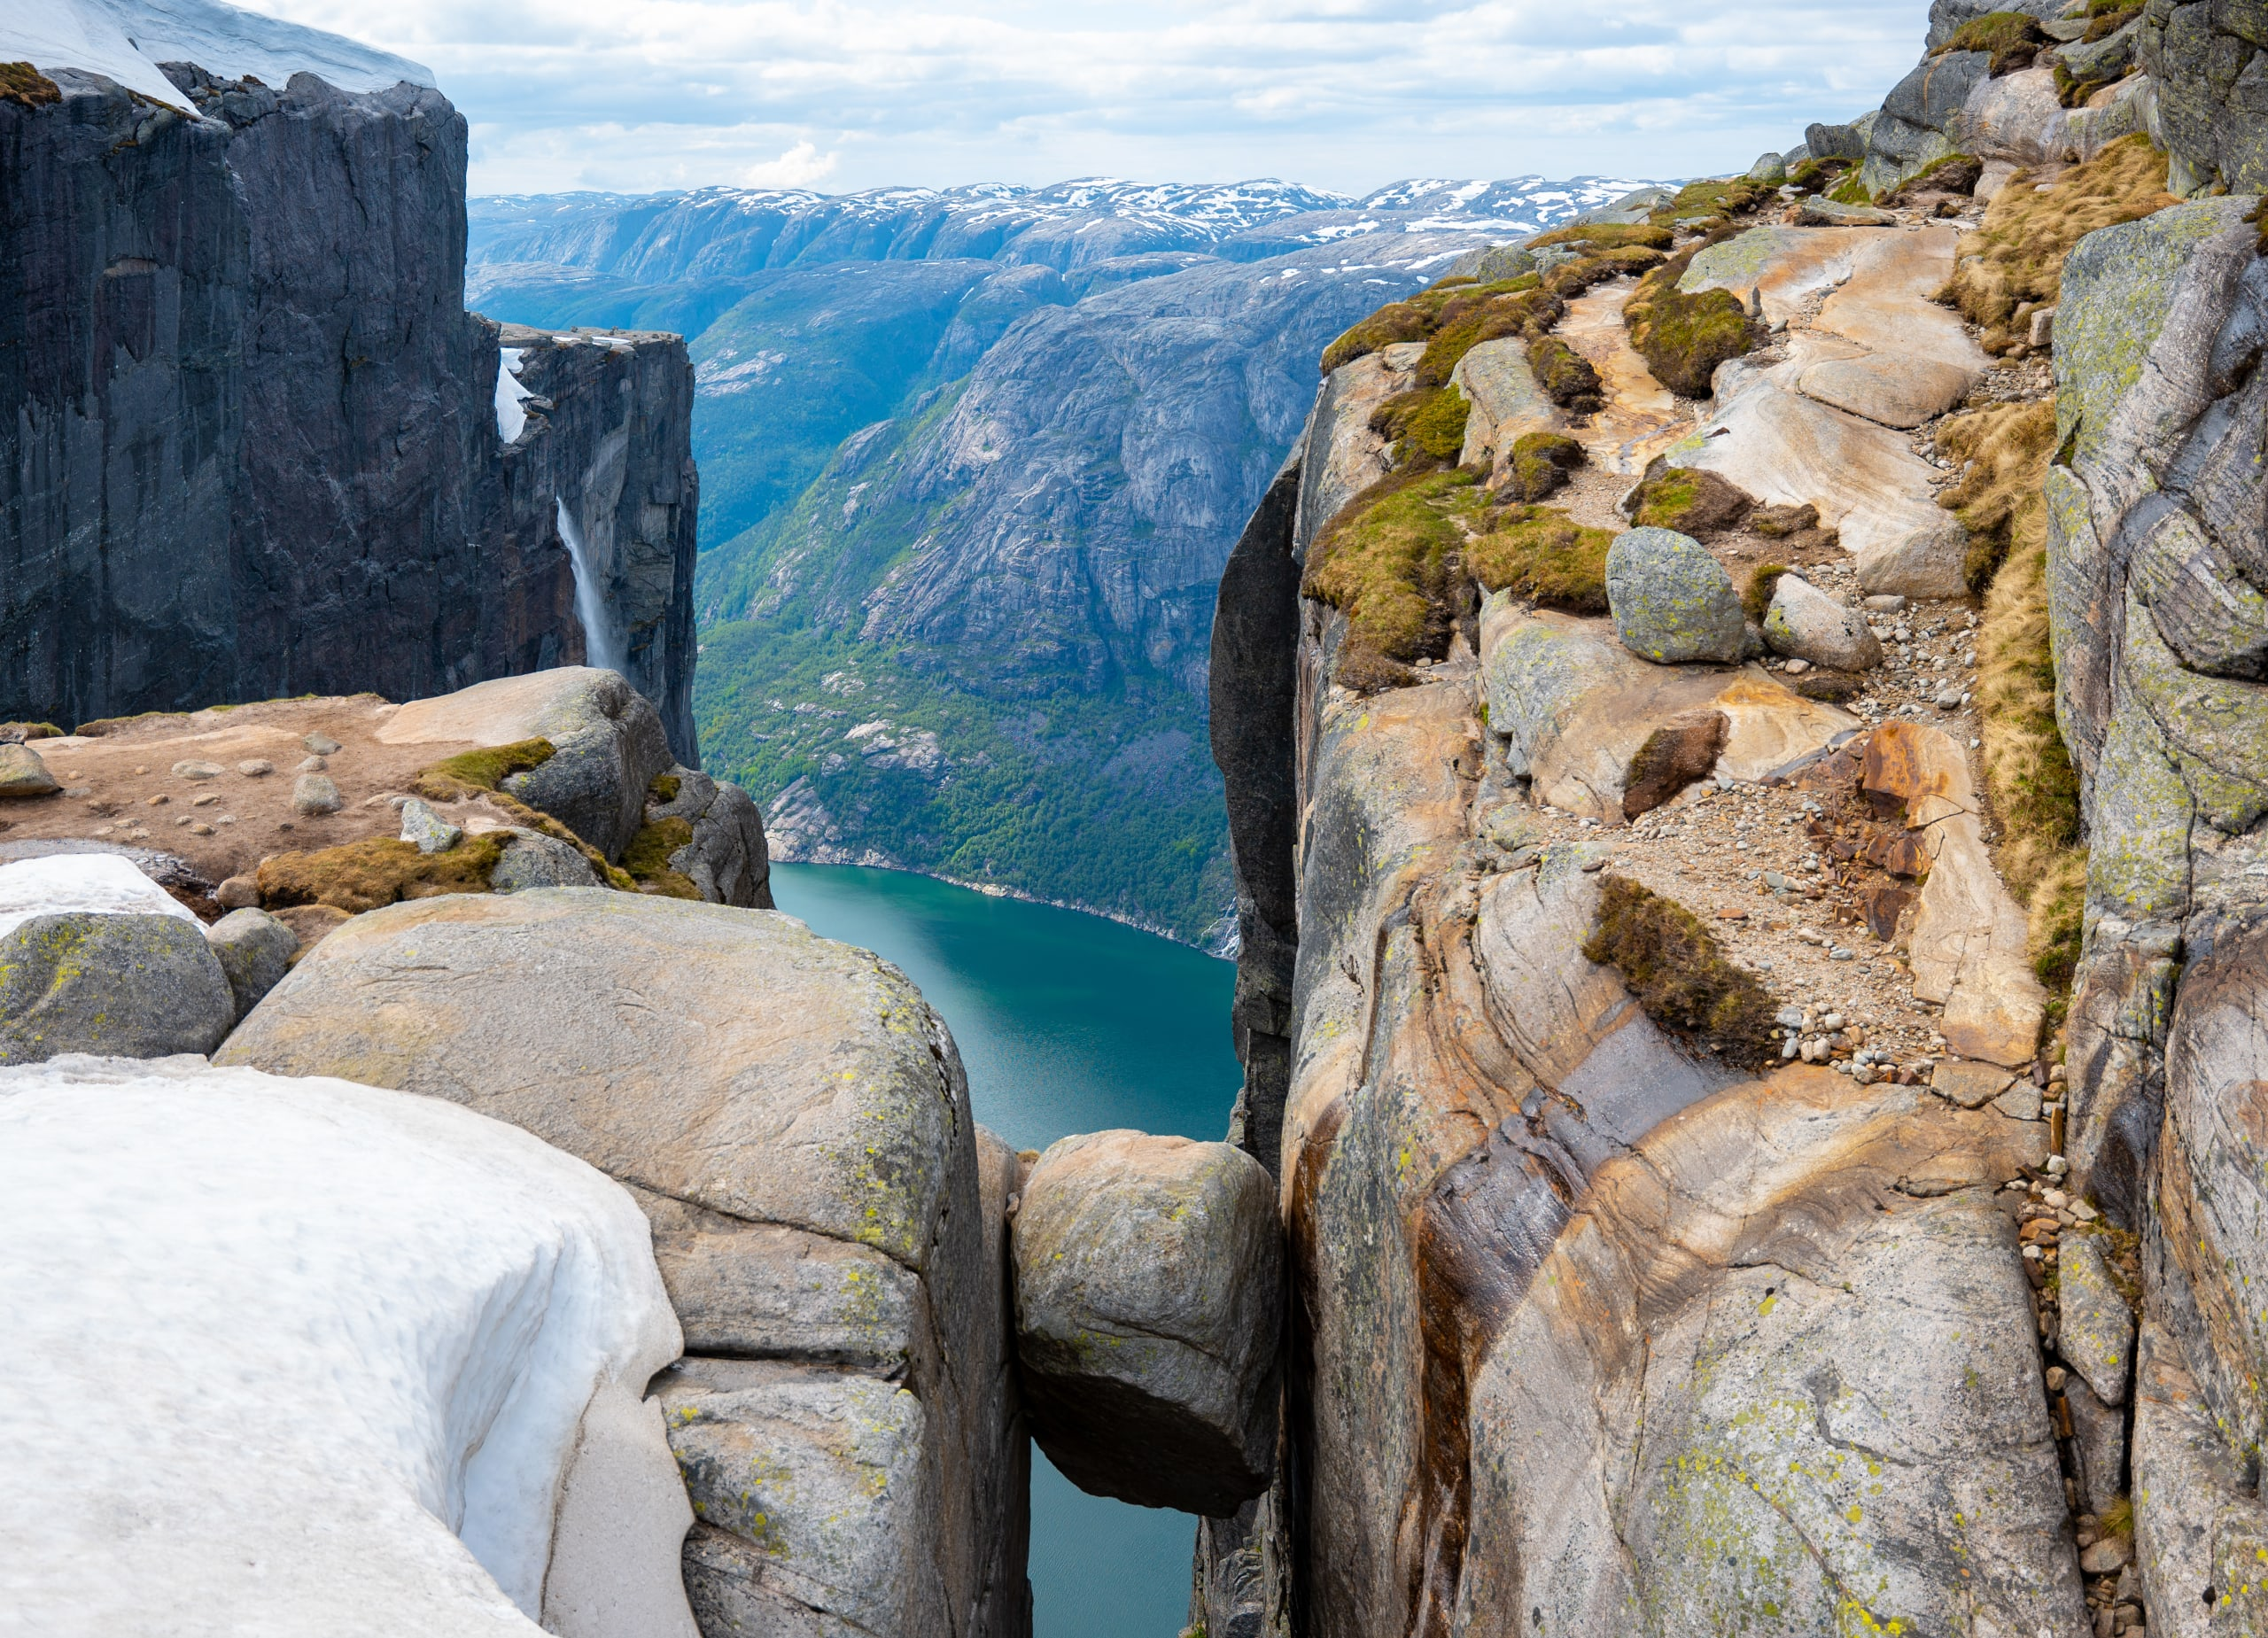 The Kjerag Boulder high above the Lysefjord